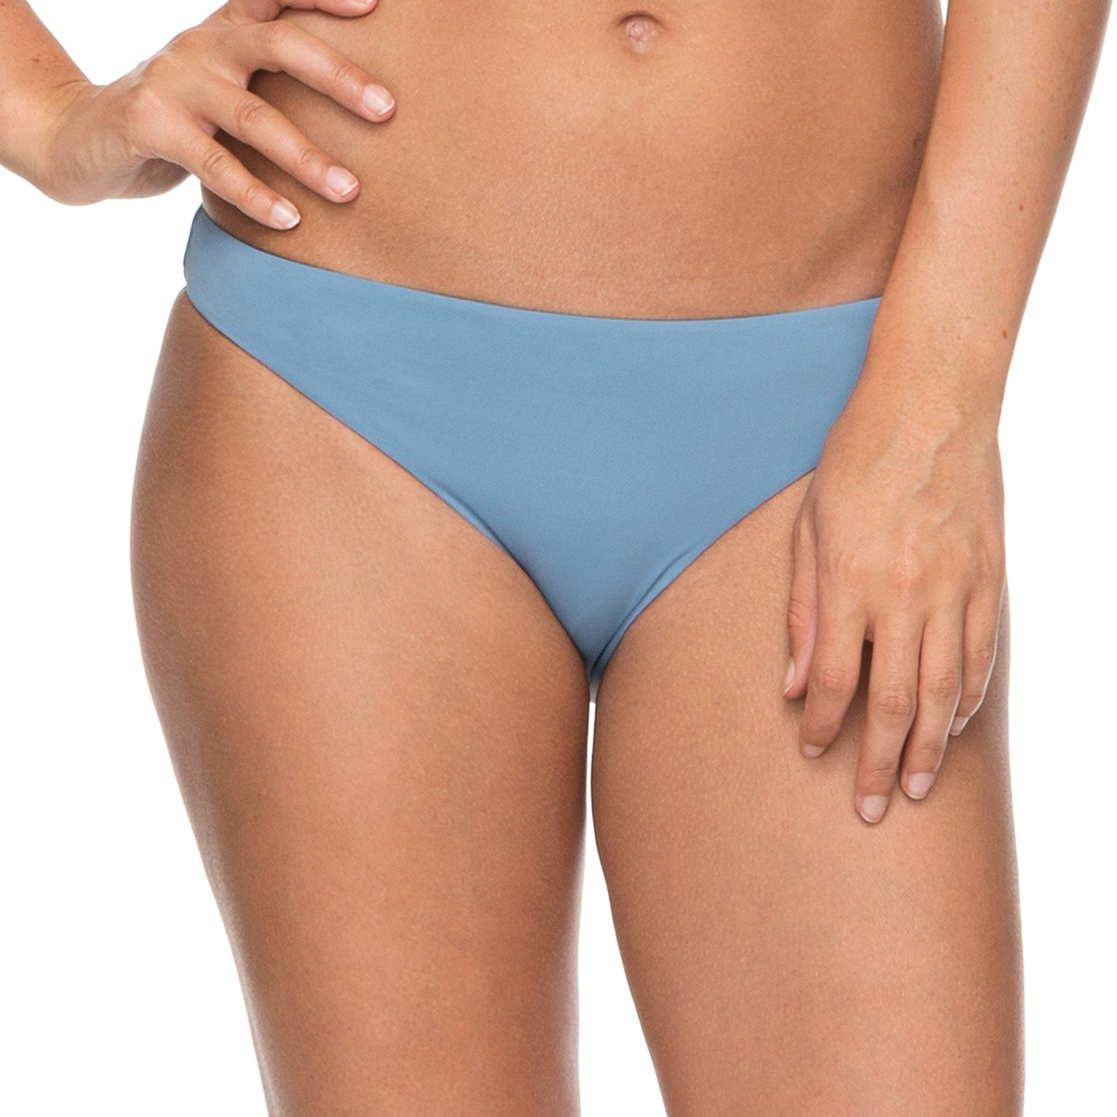 142be2d37c4 ROXY Softly Love Reversible Surfer Bikini Bottoms Erjx403573 L Blue Shadow.  About this product. Picture 1 of 4; Picture 2 of 4; Picture 3 of 4 ...